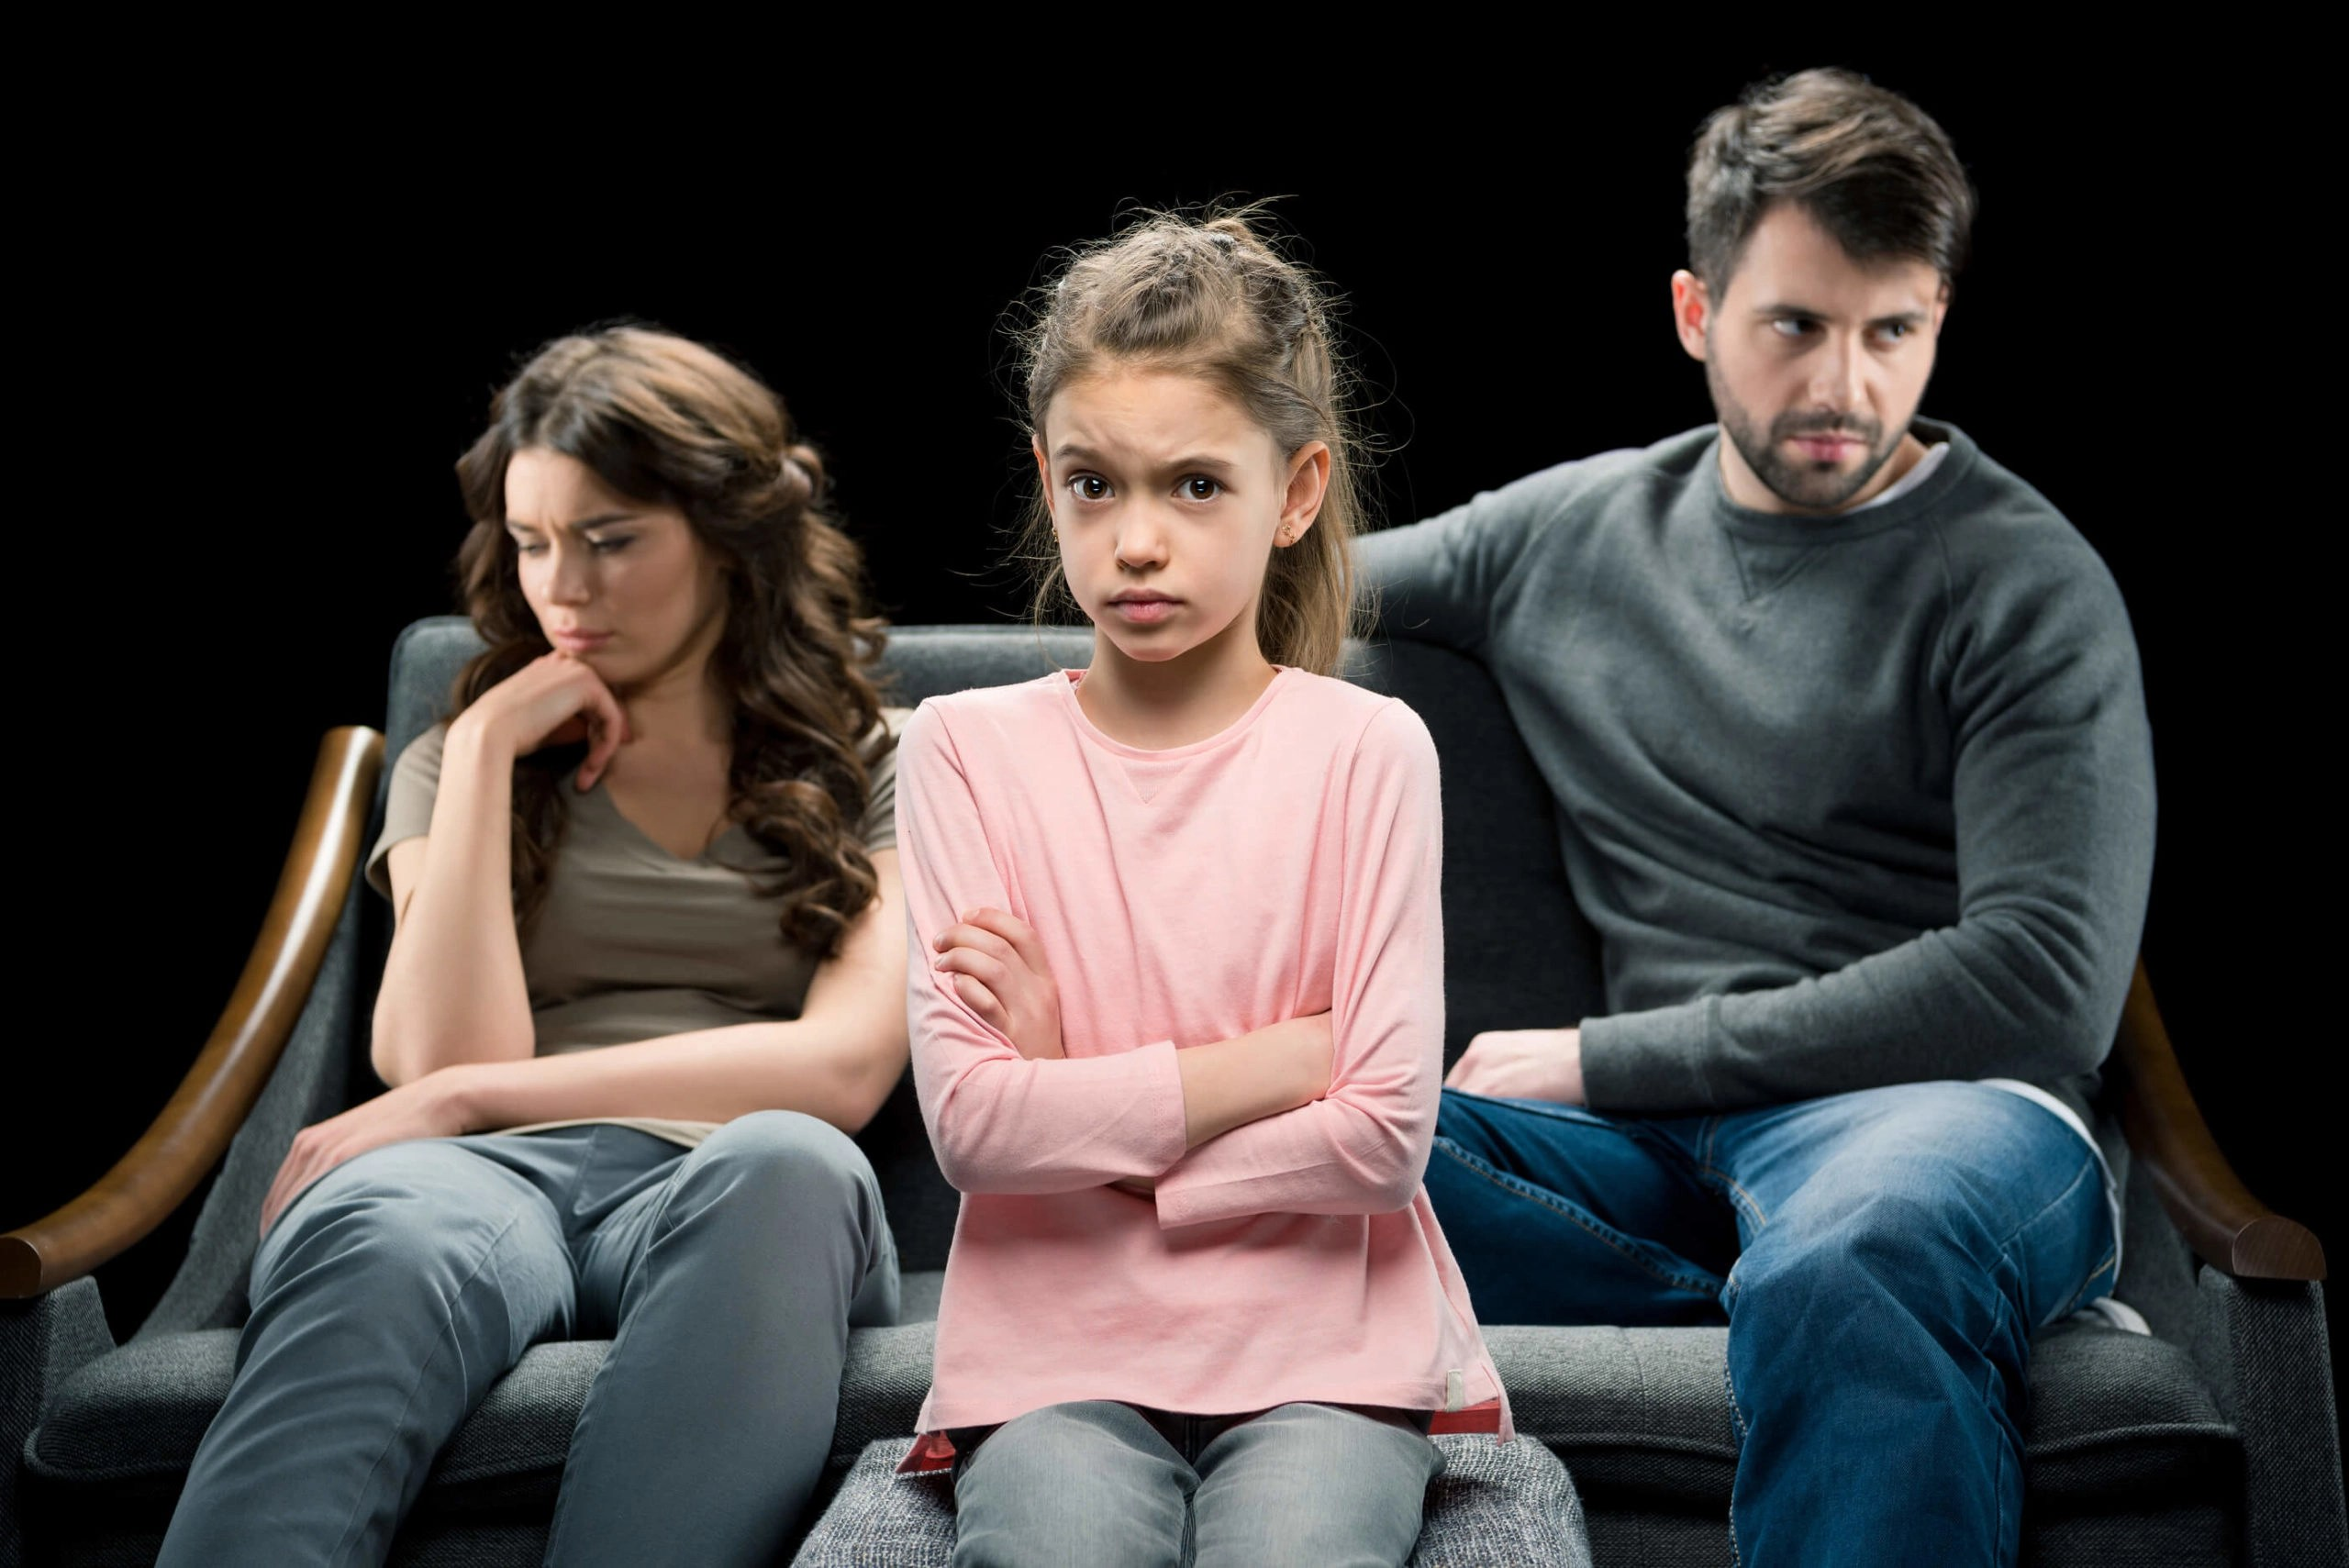 7 Questions To Ask To Find The Best Child Custody Lawyer